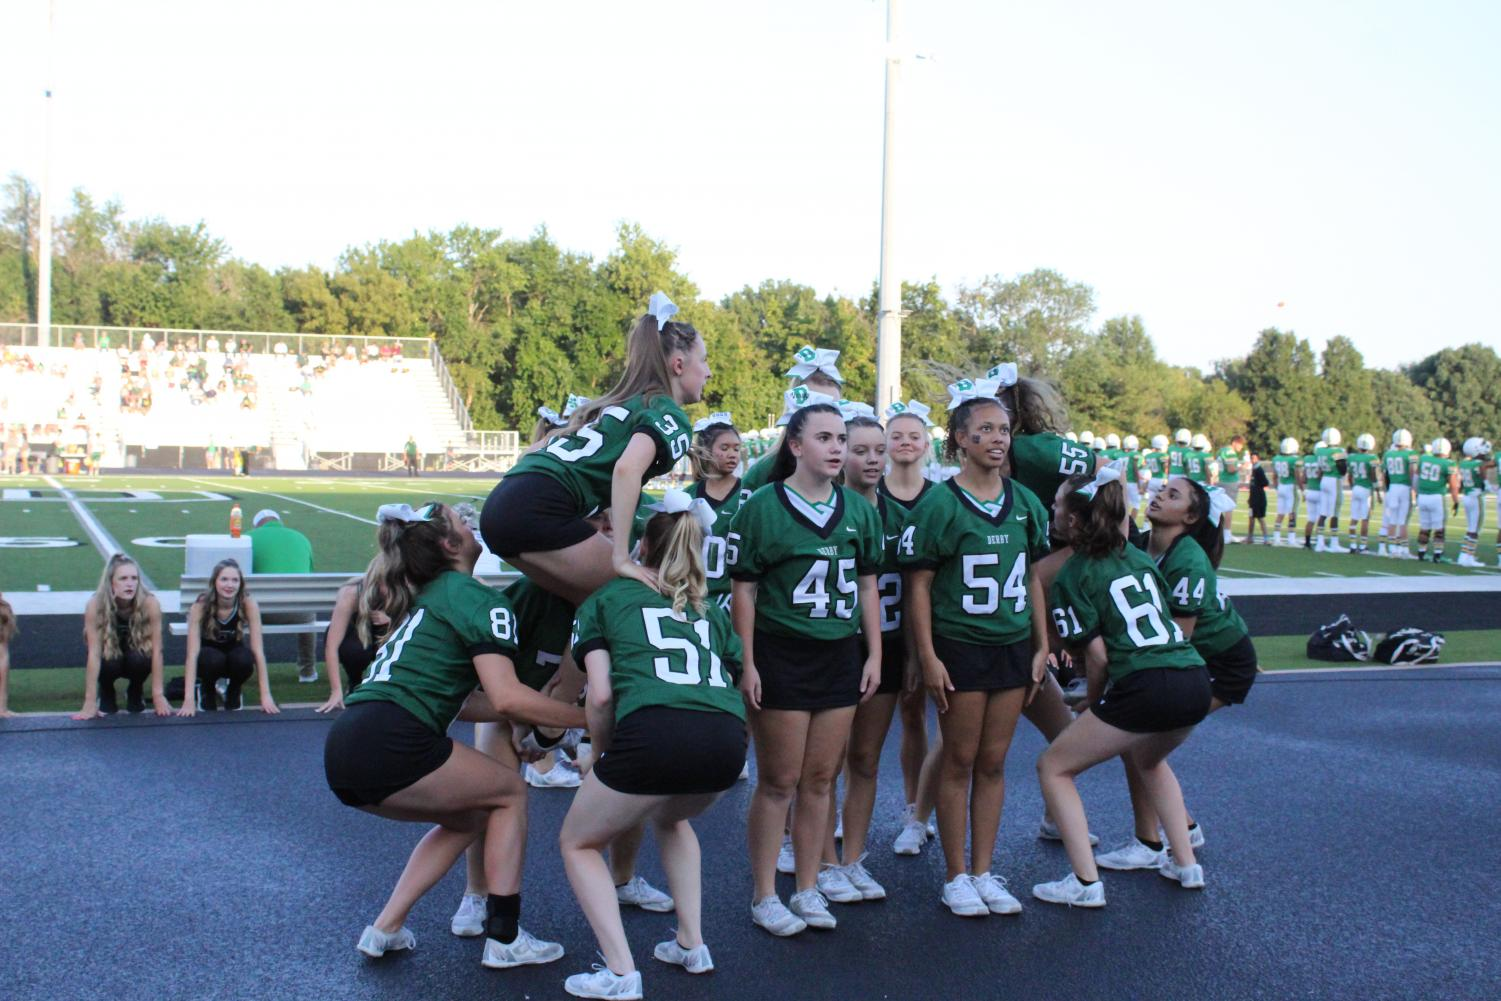 Derby+Cheer+and+Dance+Team+at+Homecoming+Football+Game+%28Photos+by+Agness+Mbezi%29